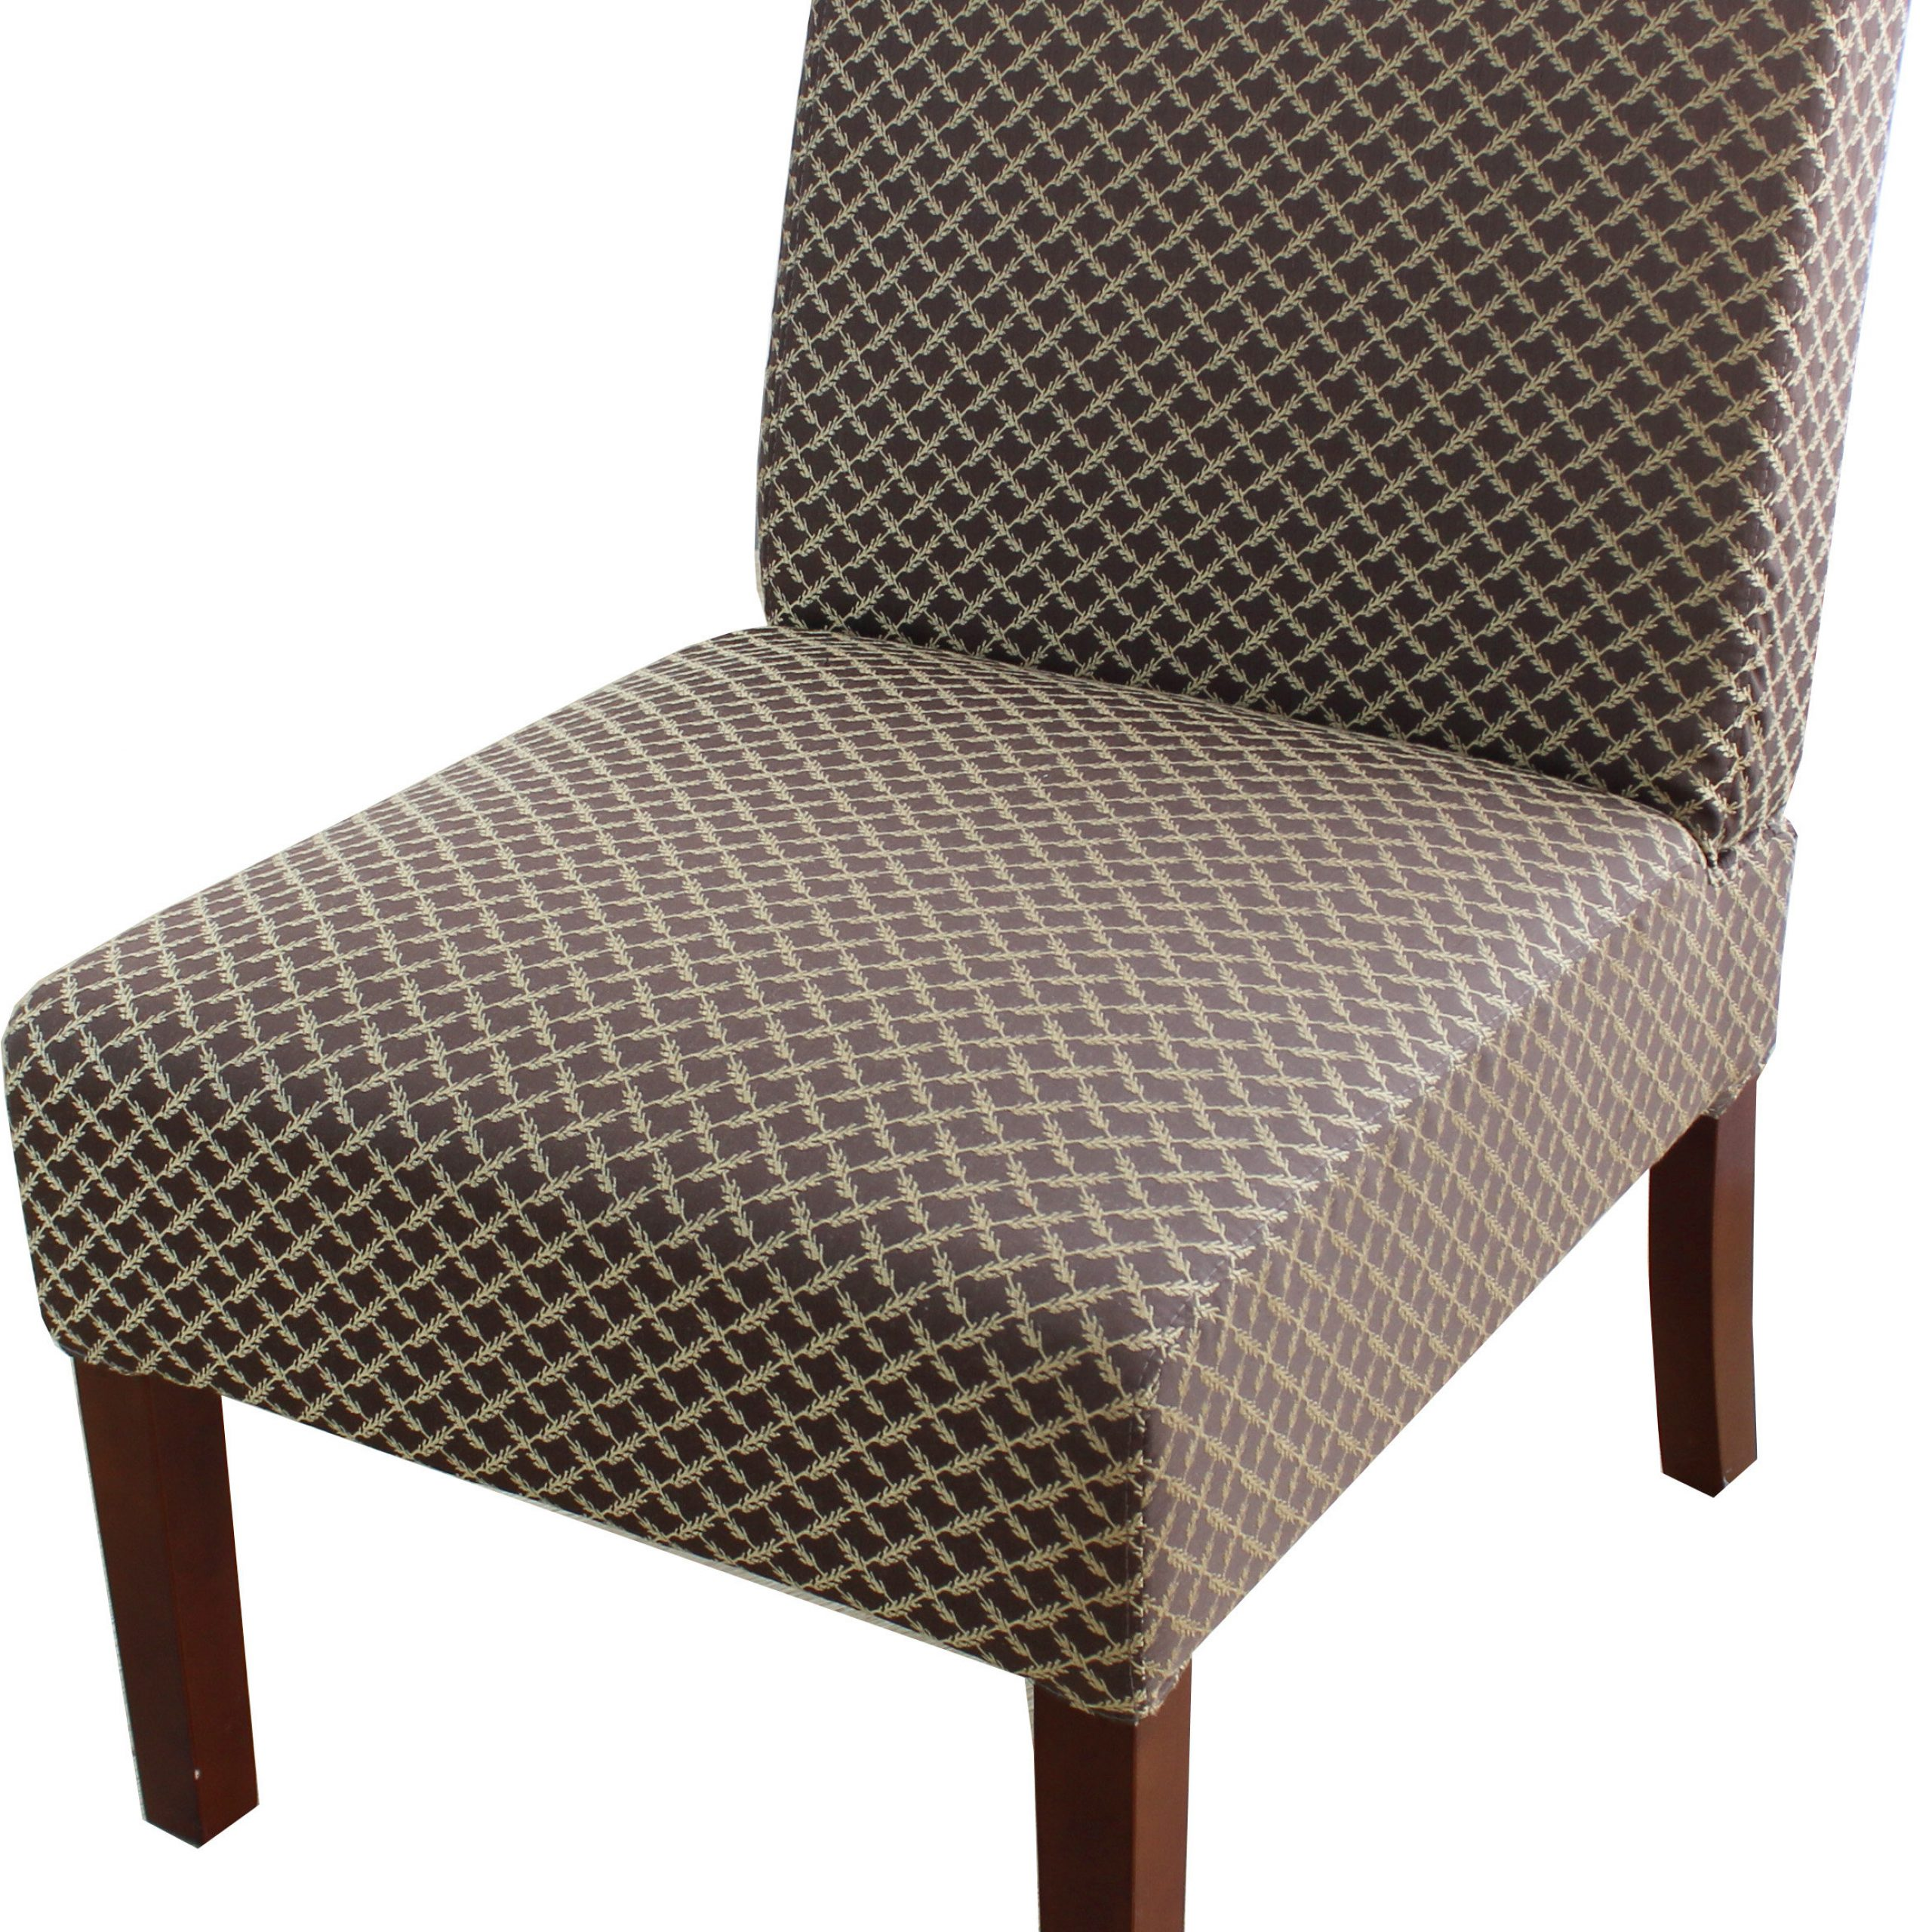 """Aalivia Slipper Chairs Intended For Most Current Wodehouse 22"""" Slipper Chair (View 5 of 20)"""